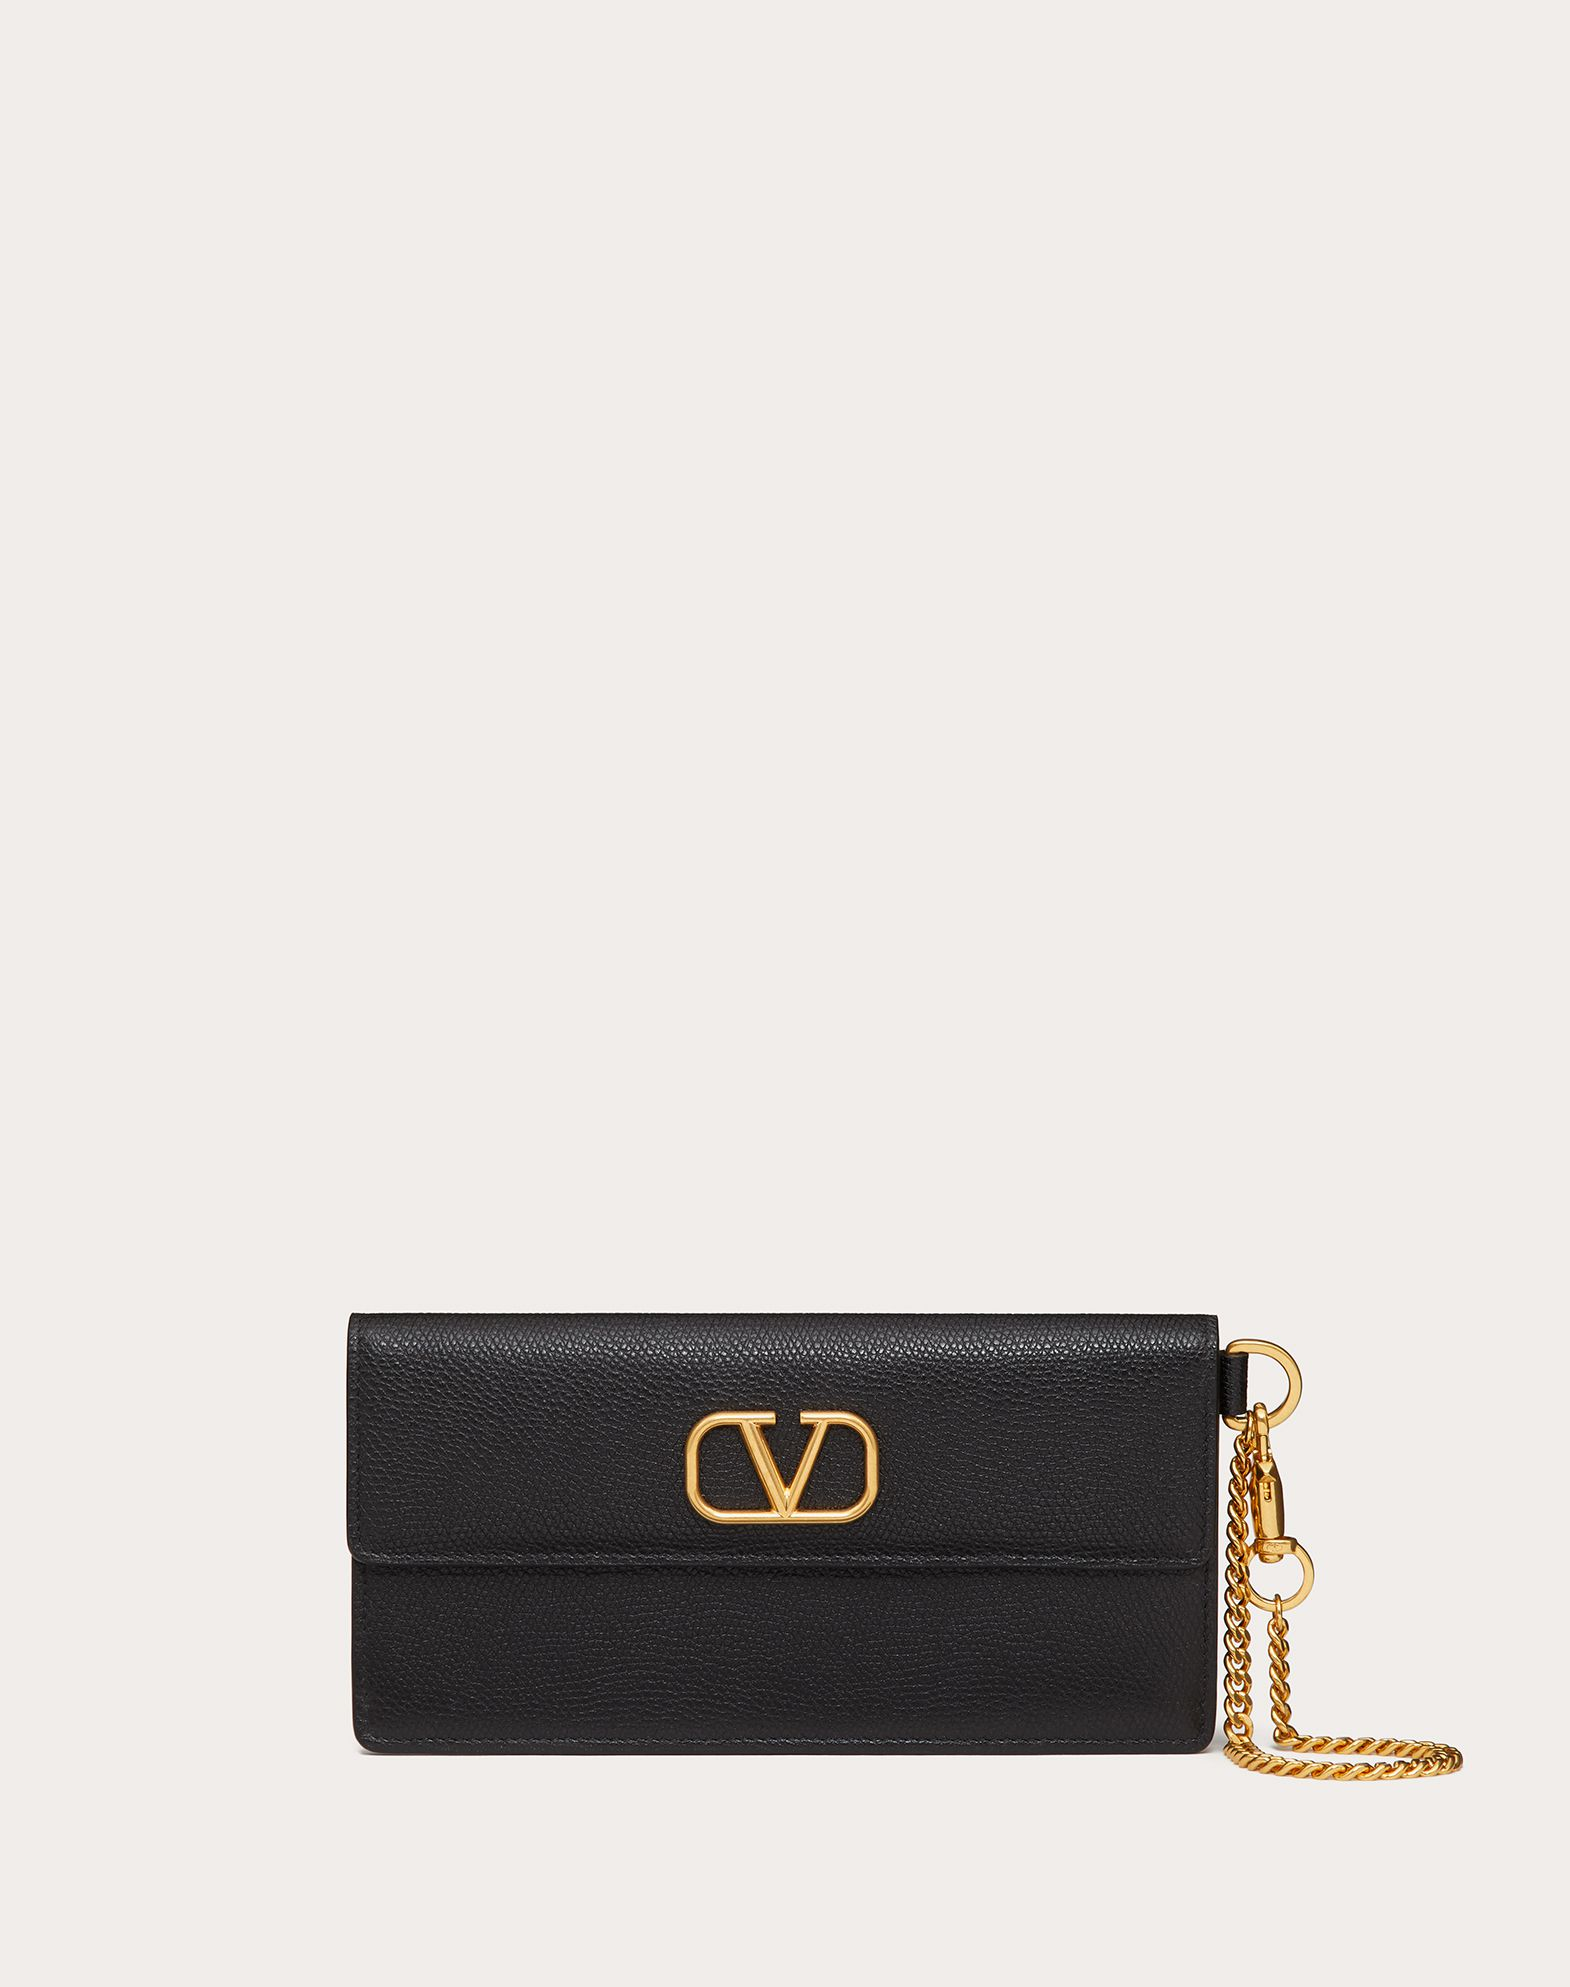 VLOGO GRAINY CALFSKIN NOTE POUCH WITH CHAIN HANDLE